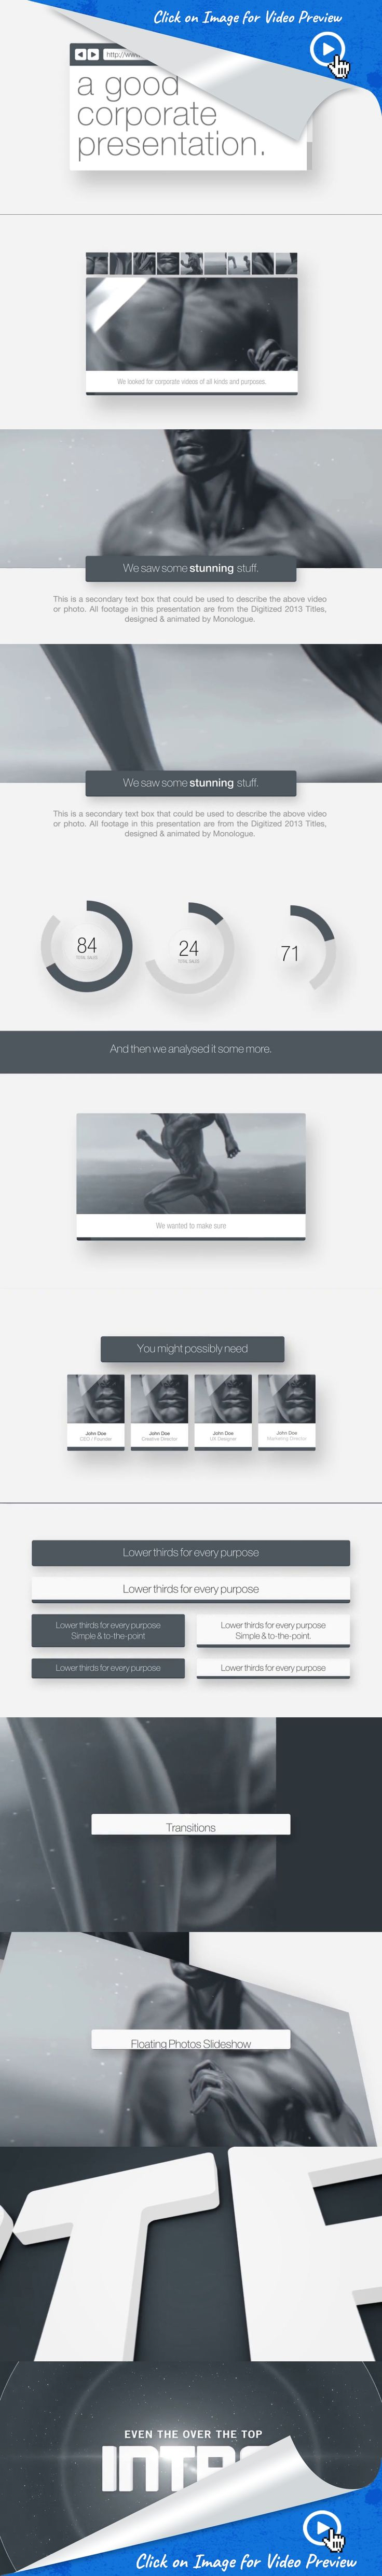 Line Drawing After Effects : Best scroll templates ideas on pinterest free hand